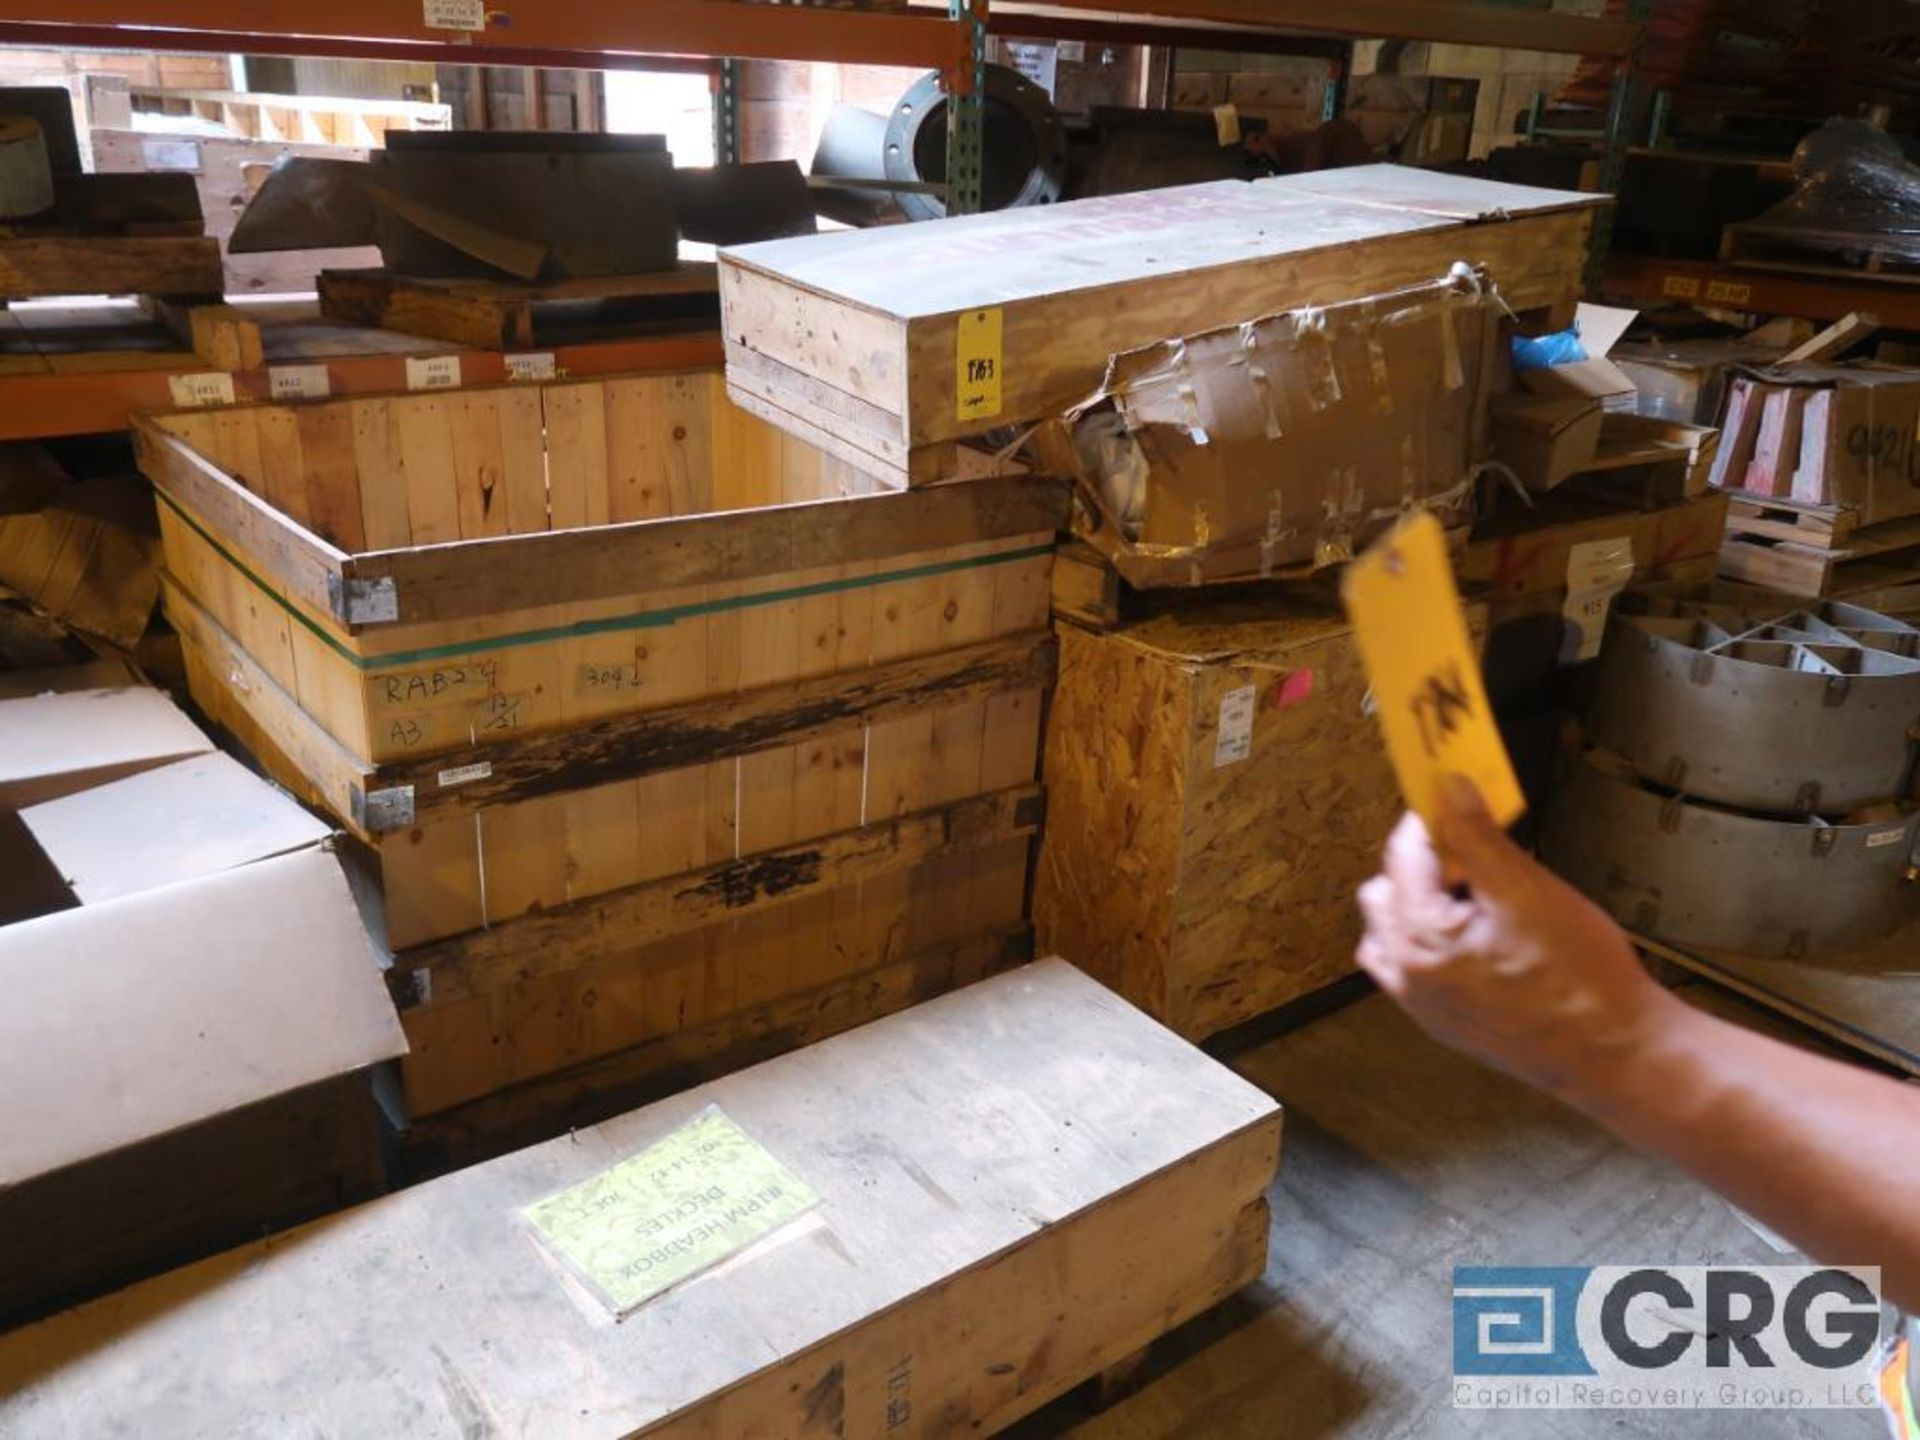 Lot of assorted parts including expansion joint, valves, fan blade, and rotors (Next Bay Cage Area) - Image 5 of 15